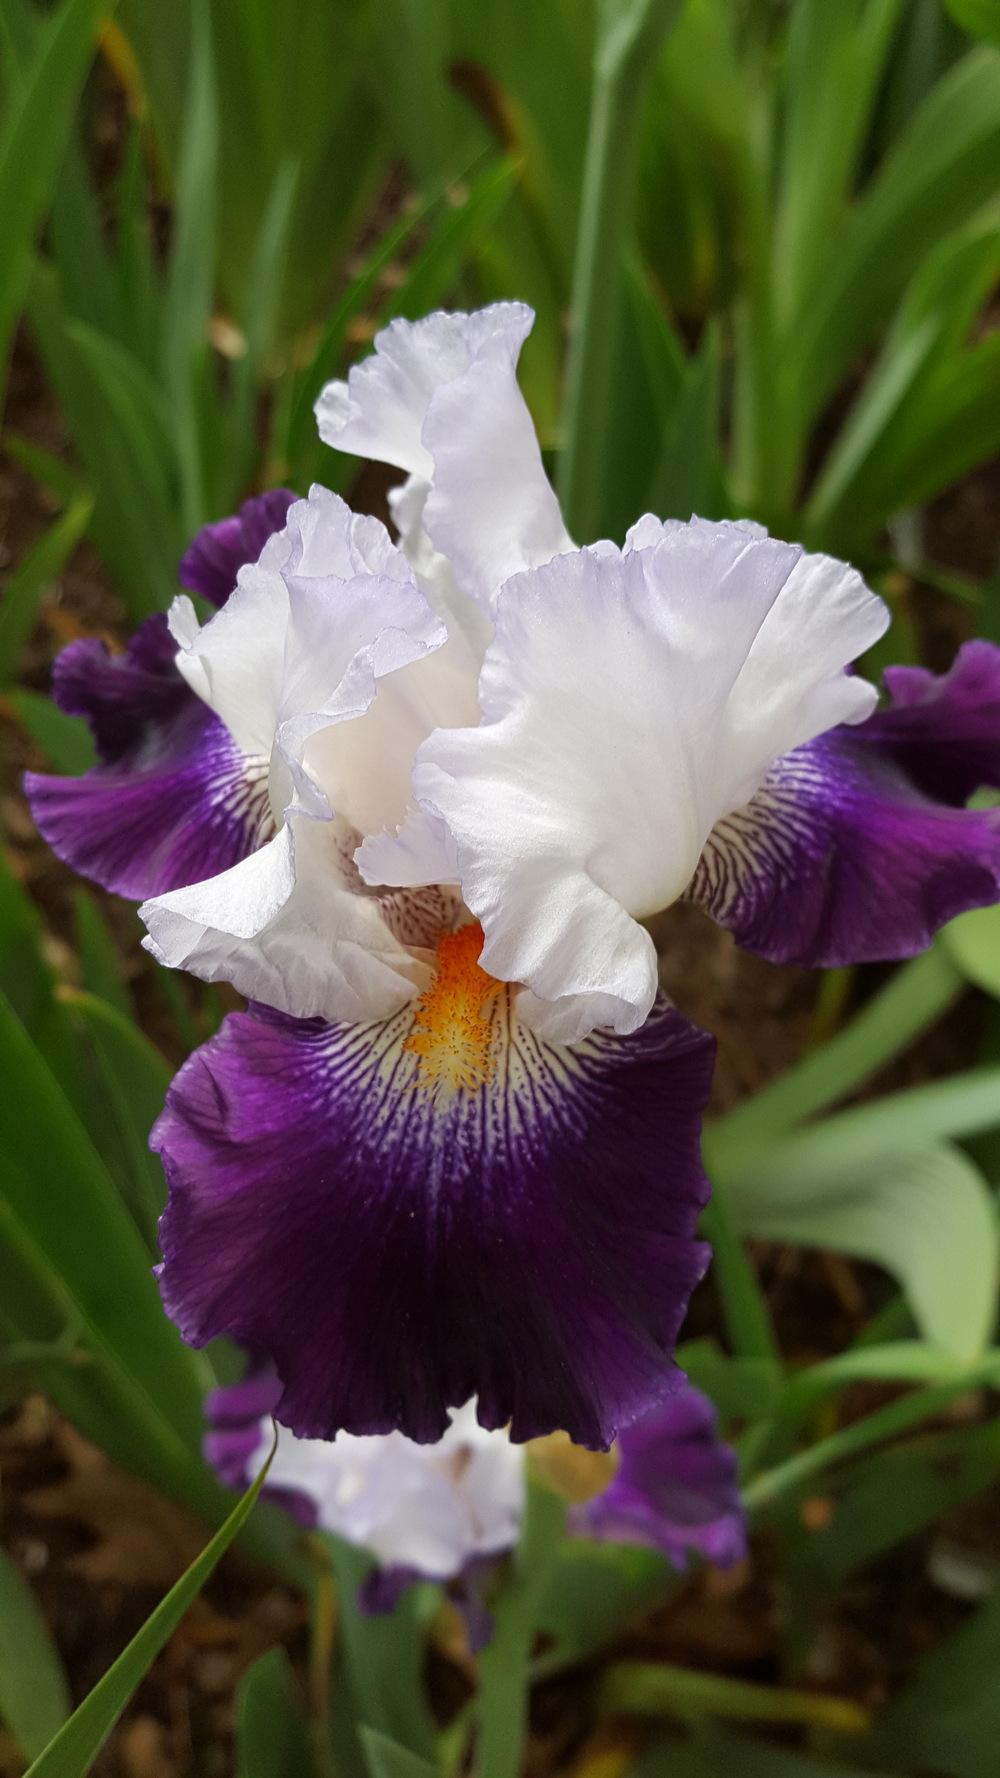 Photo of Tall Bearded Iris (Iris 'Cleared for Takeoff') uploaded by Dachsylady86